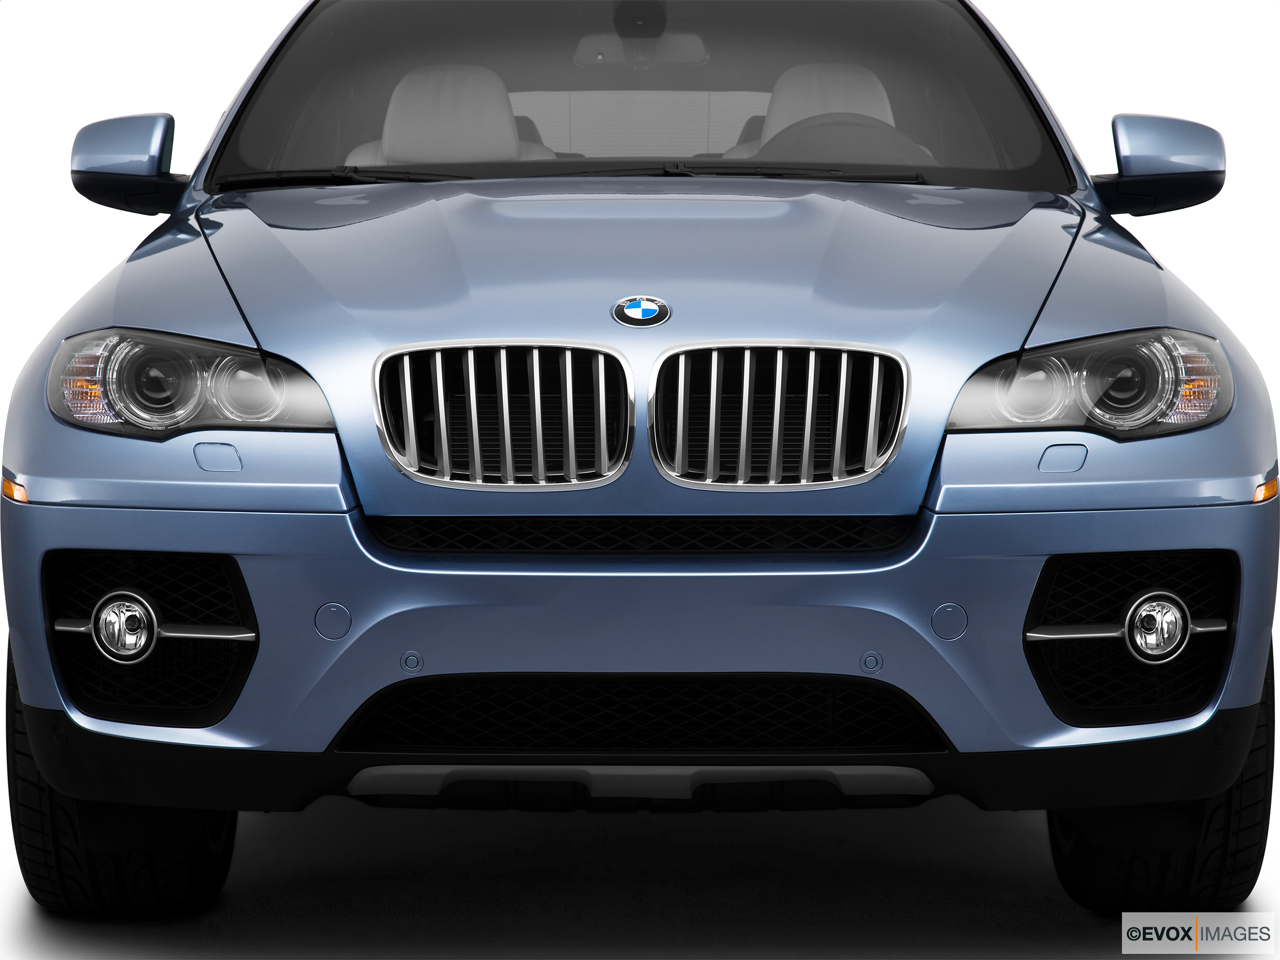 2010 BMW X6 Hybrid Base Close up of Grill.